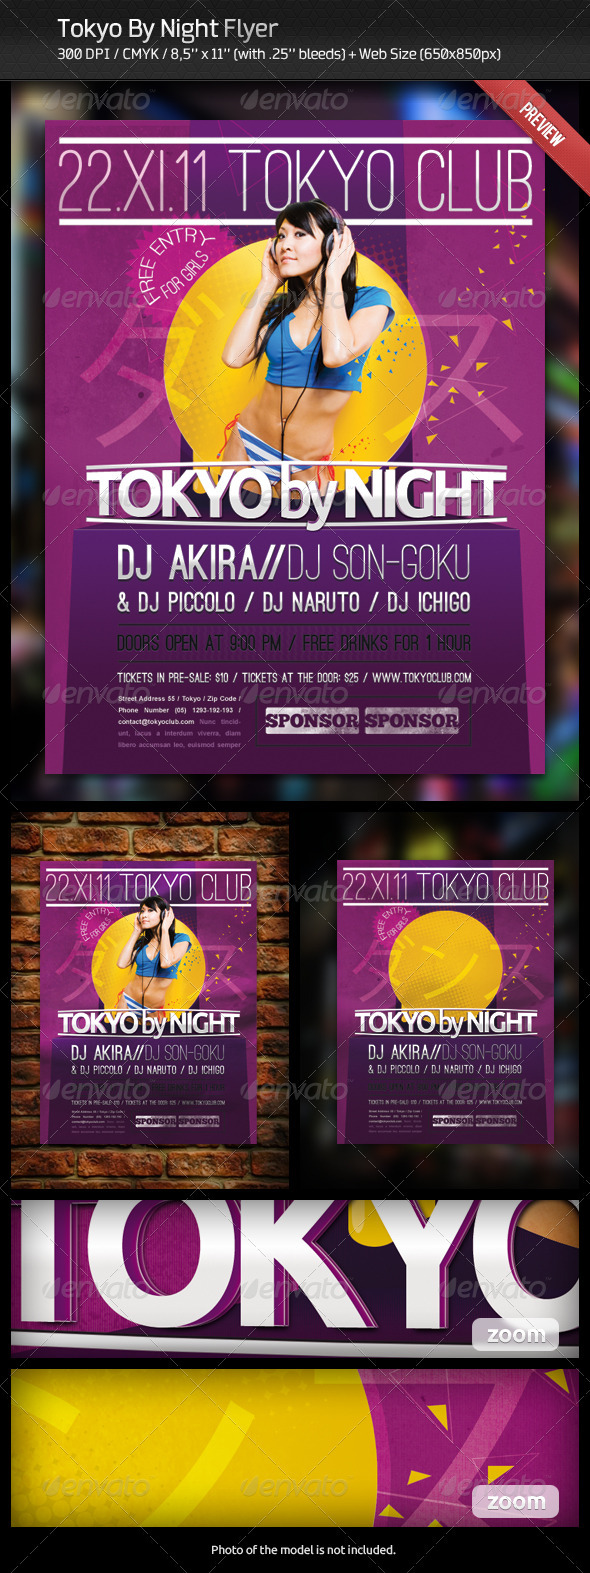 Tokyo By Night Flyer - Clubs & Parties Events